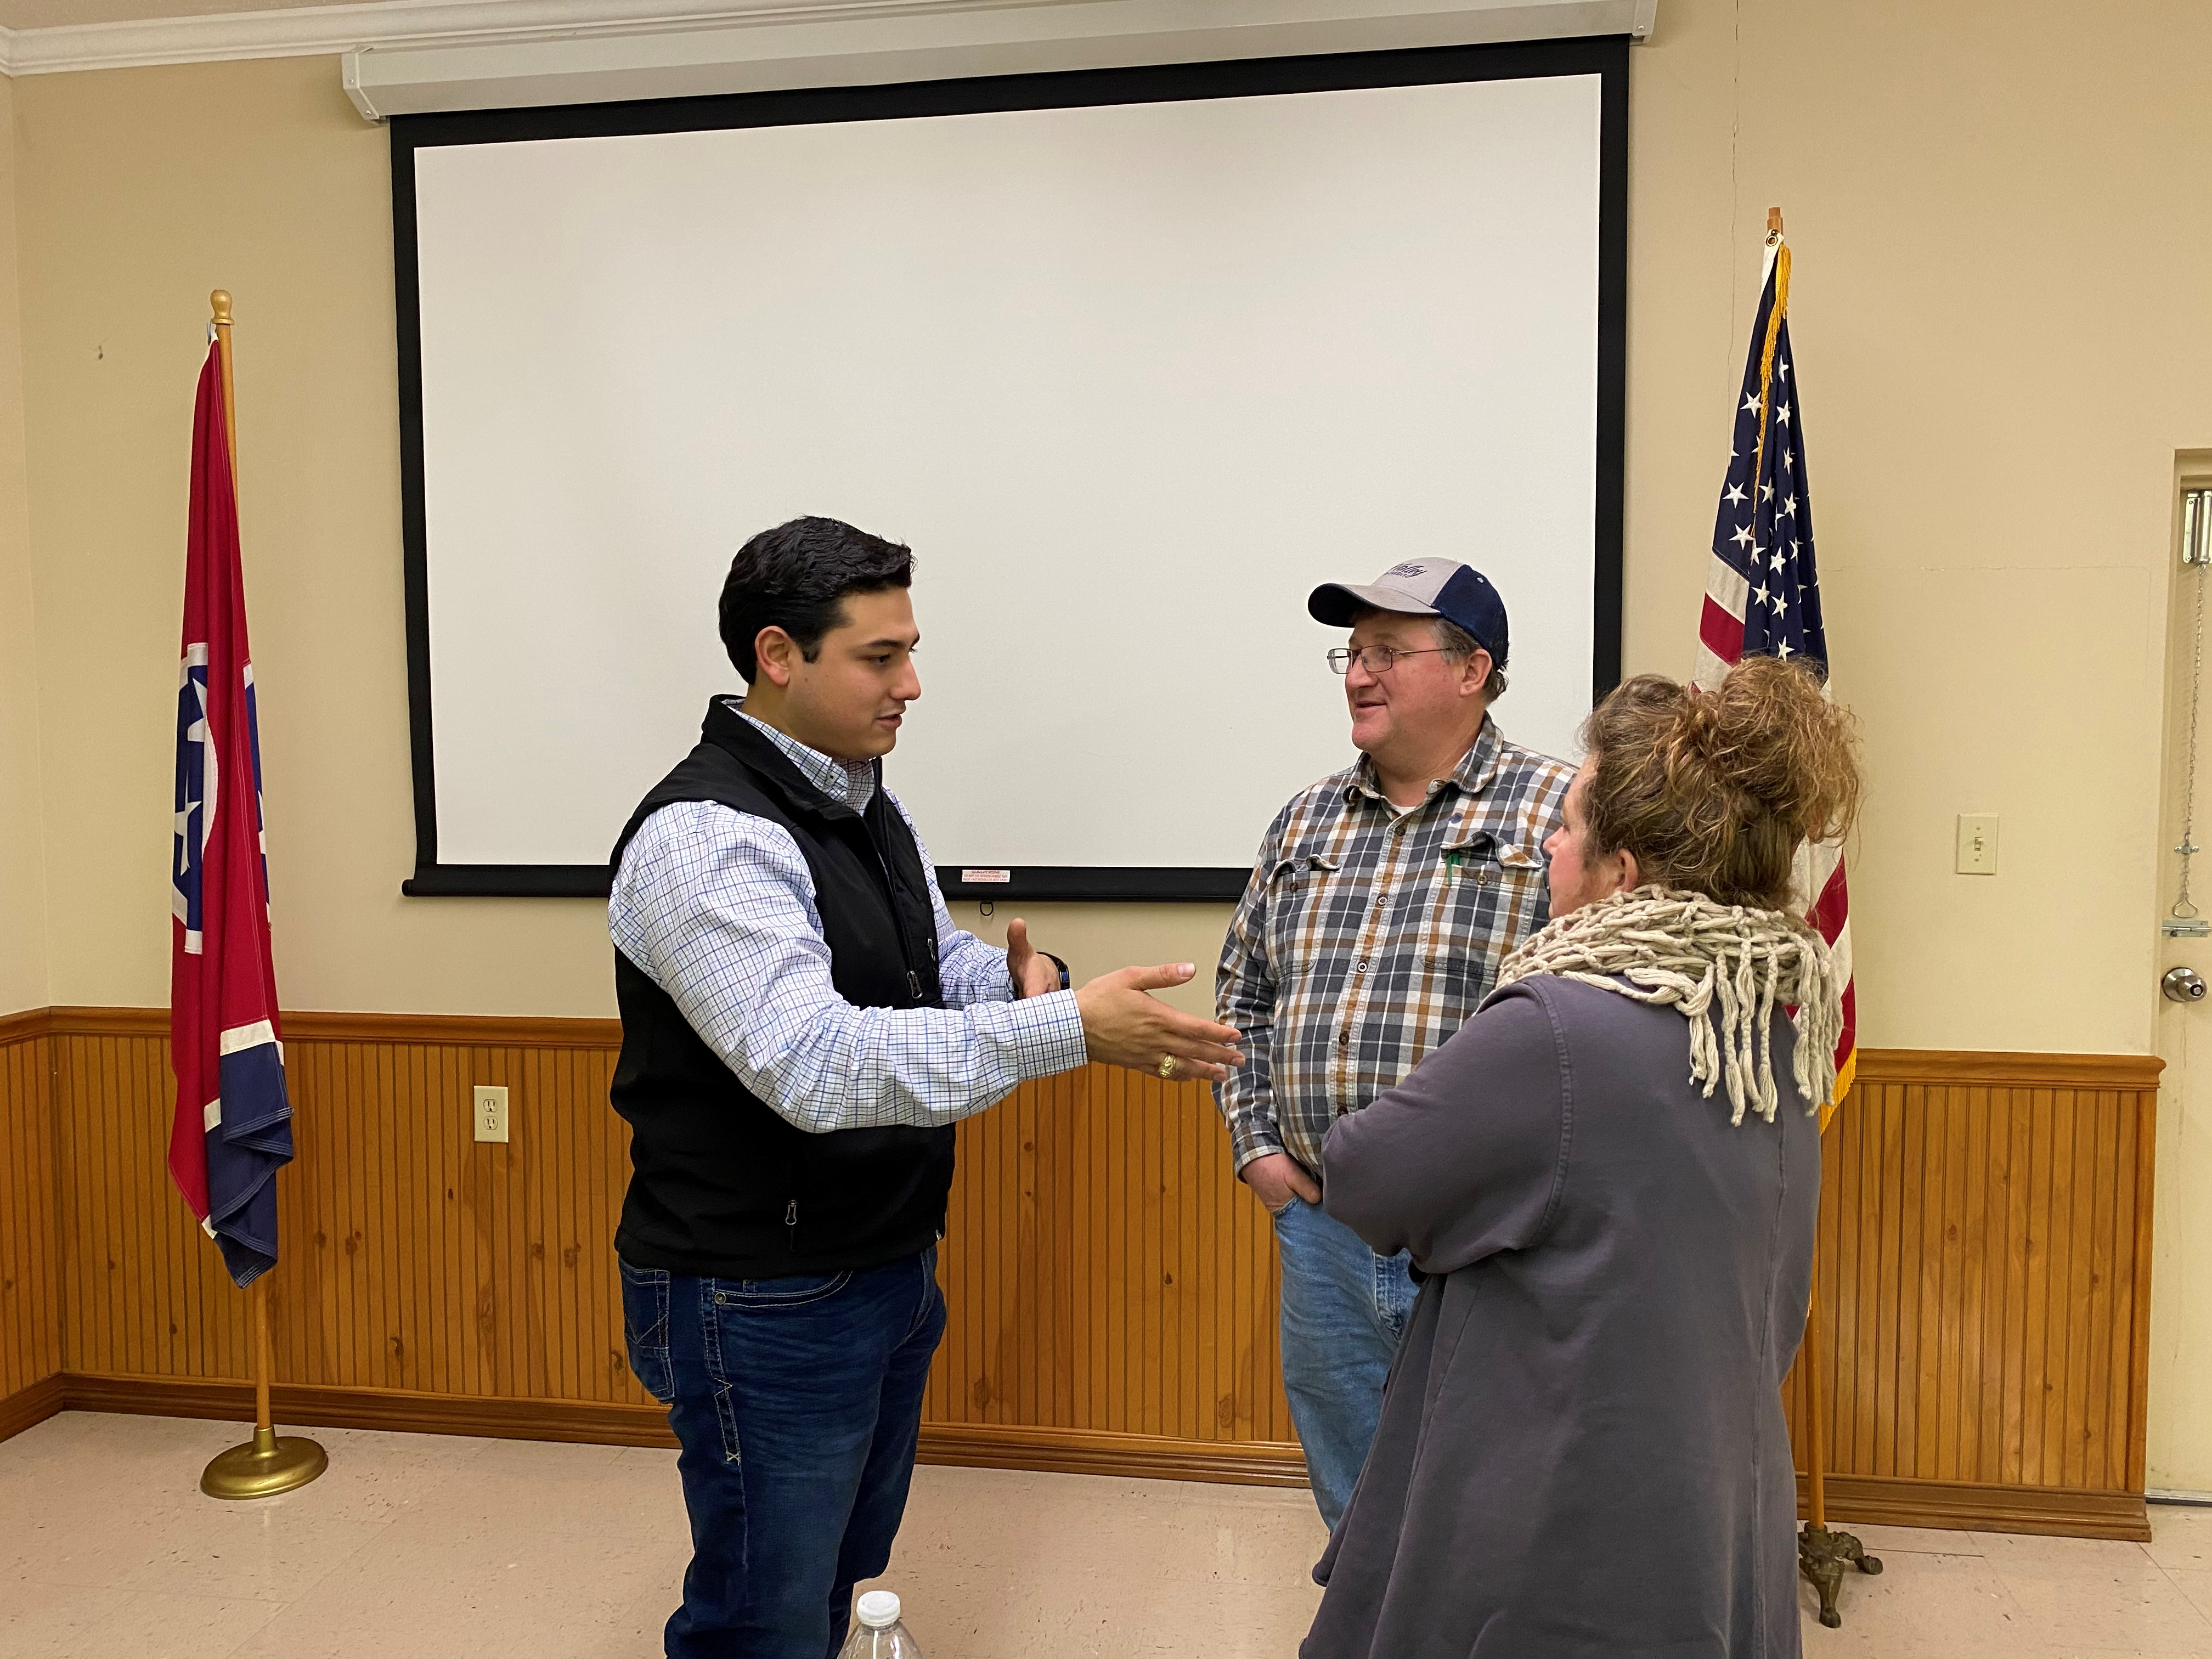 Charley Martinez, Farm Management Economist, talking to couple